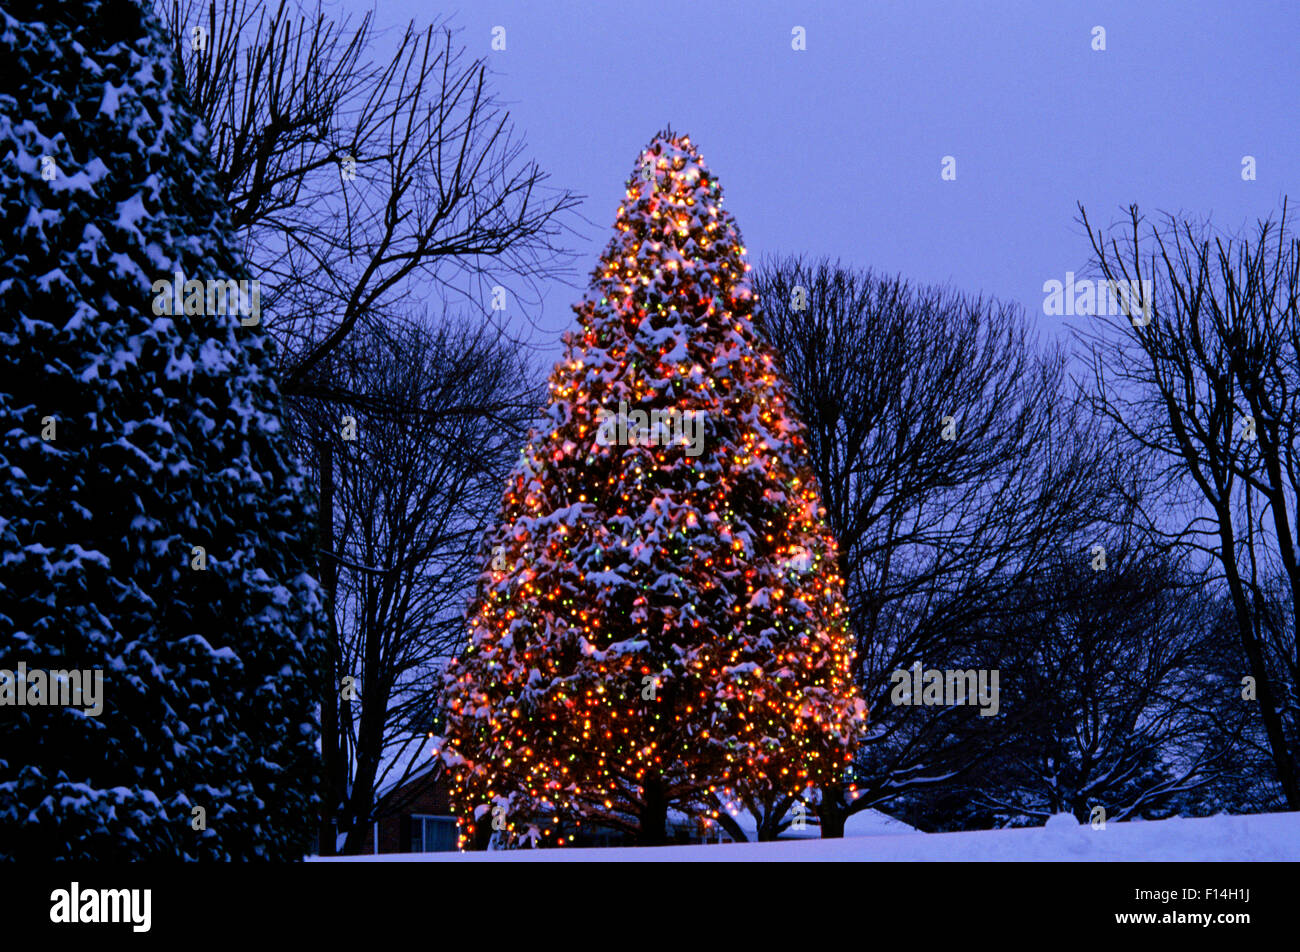 Lighted Outdoor Christmas Tree At Night Stock Photo